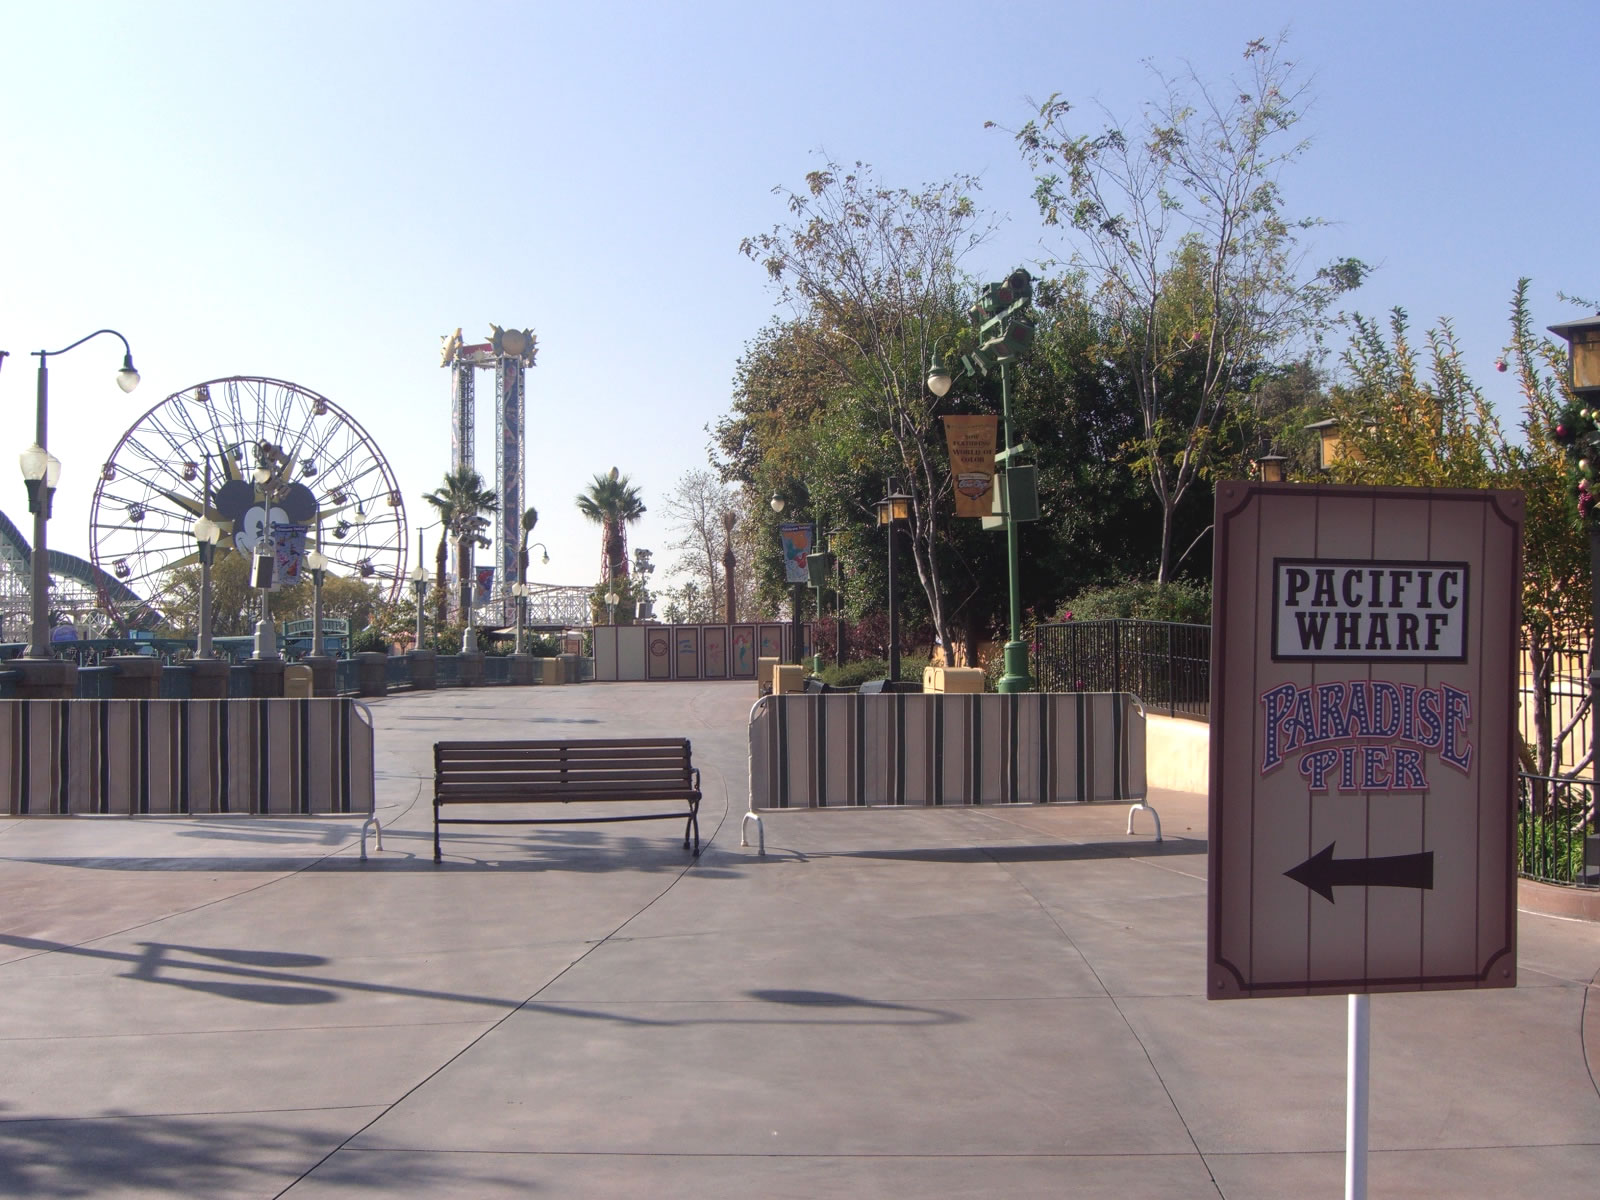 To get to Paradise Pier, follow the detour signs through the Pacific Wharf. Photo by Adrienne Vincent-Phoenix.